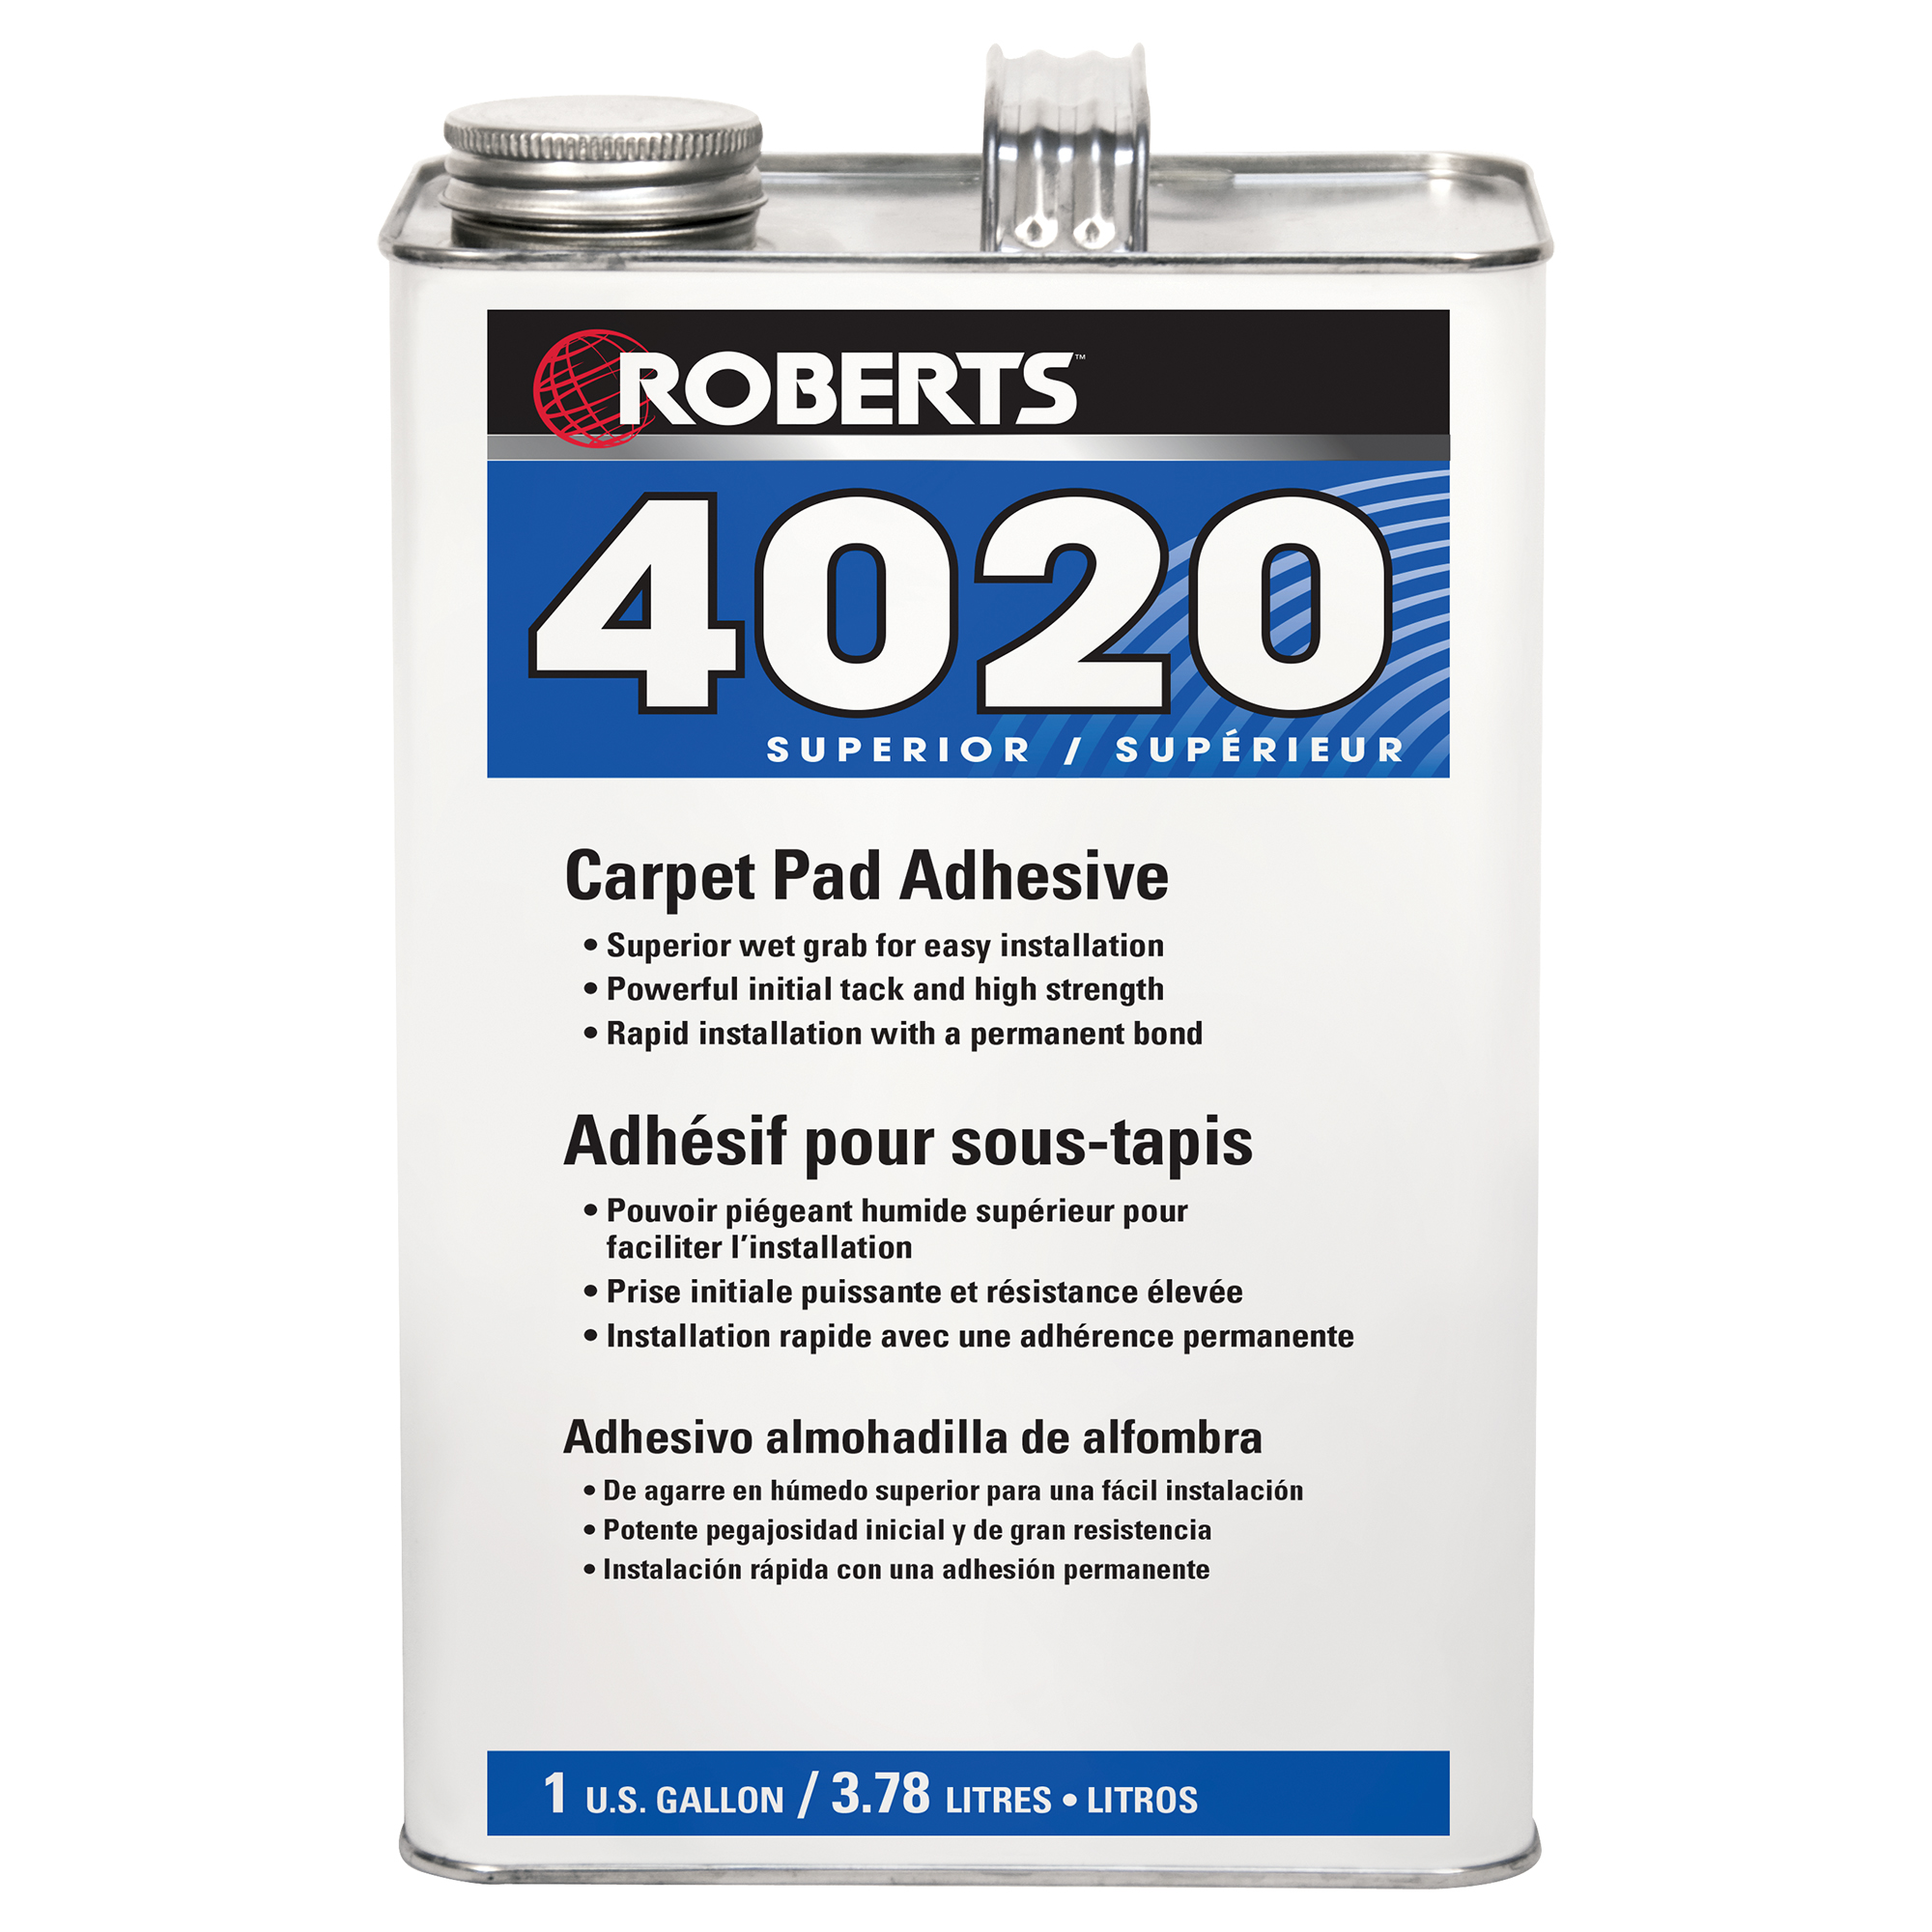 <br><em>(DISCONTINUED)</em></br>Carpet Pad Adhesive